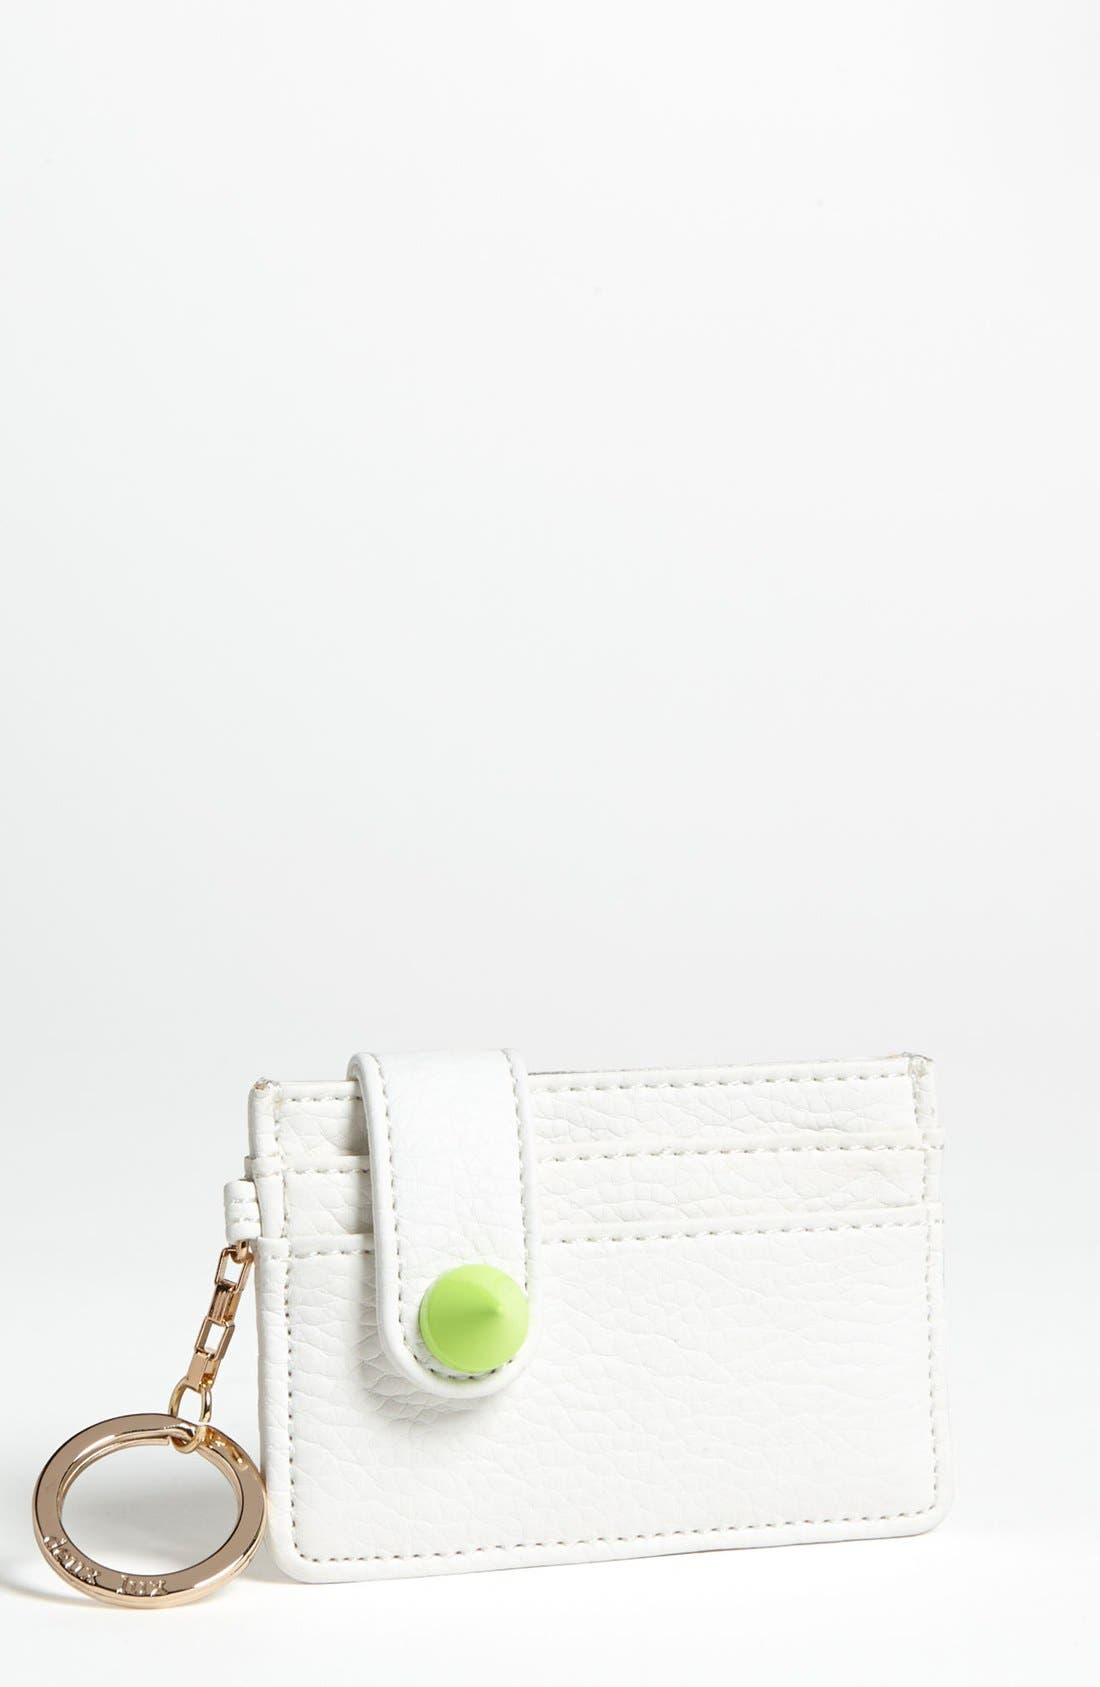 Alternate Image 1 Selected - Deux Lux 'Empire City' Key Ring Card Wallet